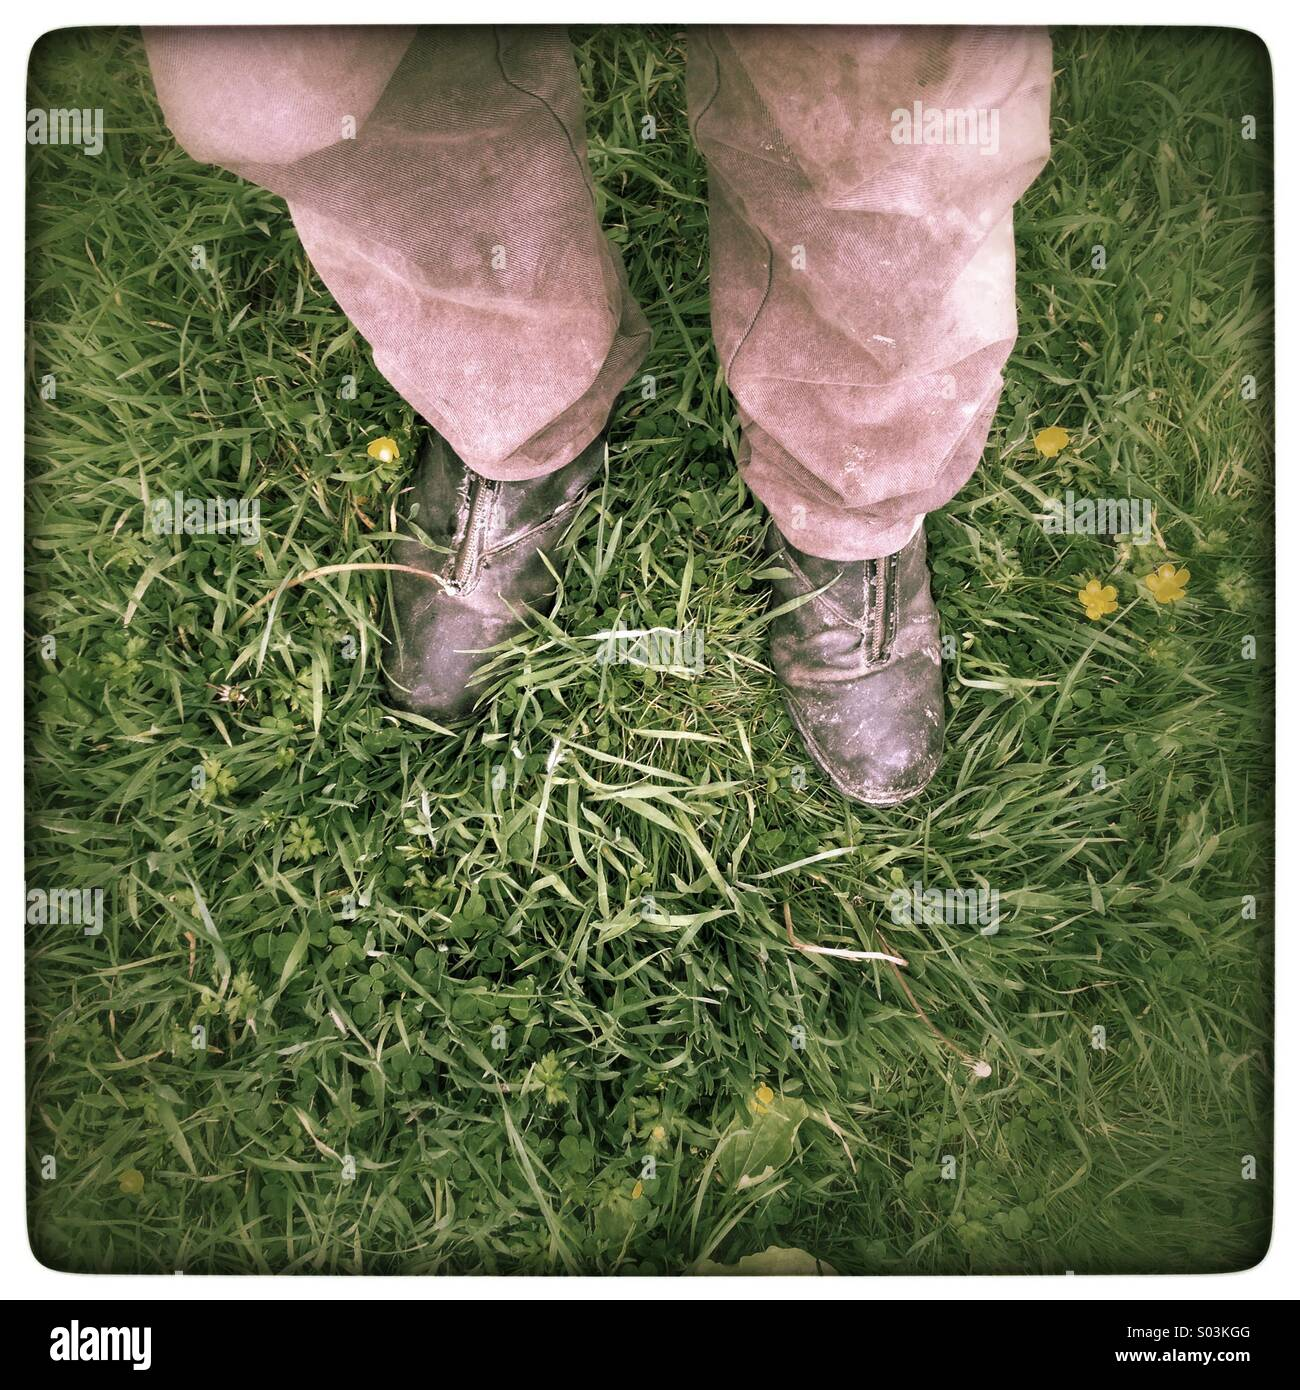 Man's feet in grass wearing boots - Stock Image